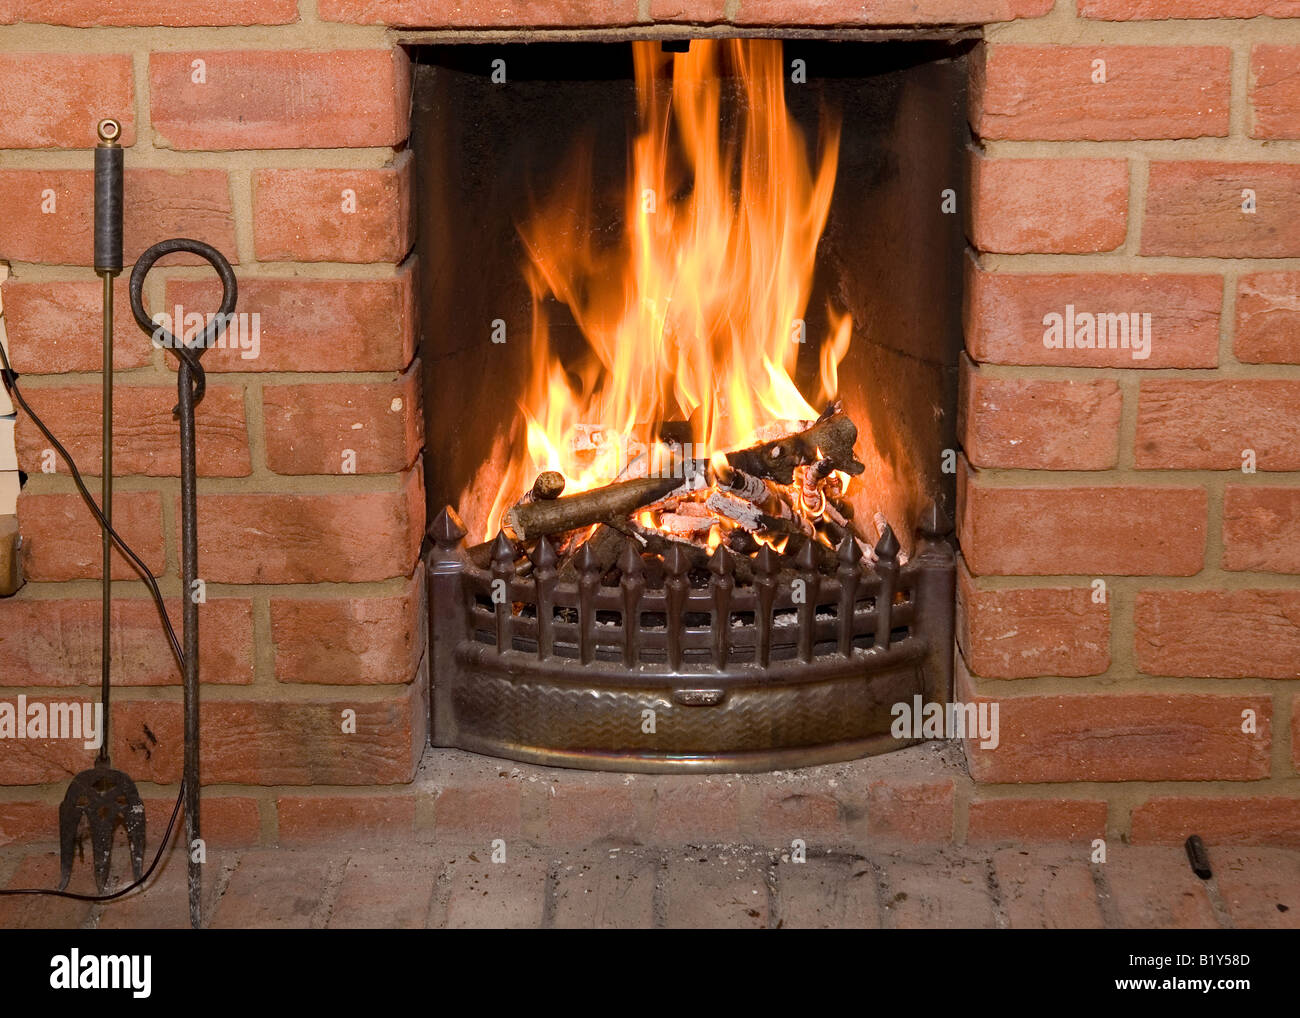 Open Fire Burning In A Brick Fireplace Stock Photo Royalty Free Image 18421885 Alamy